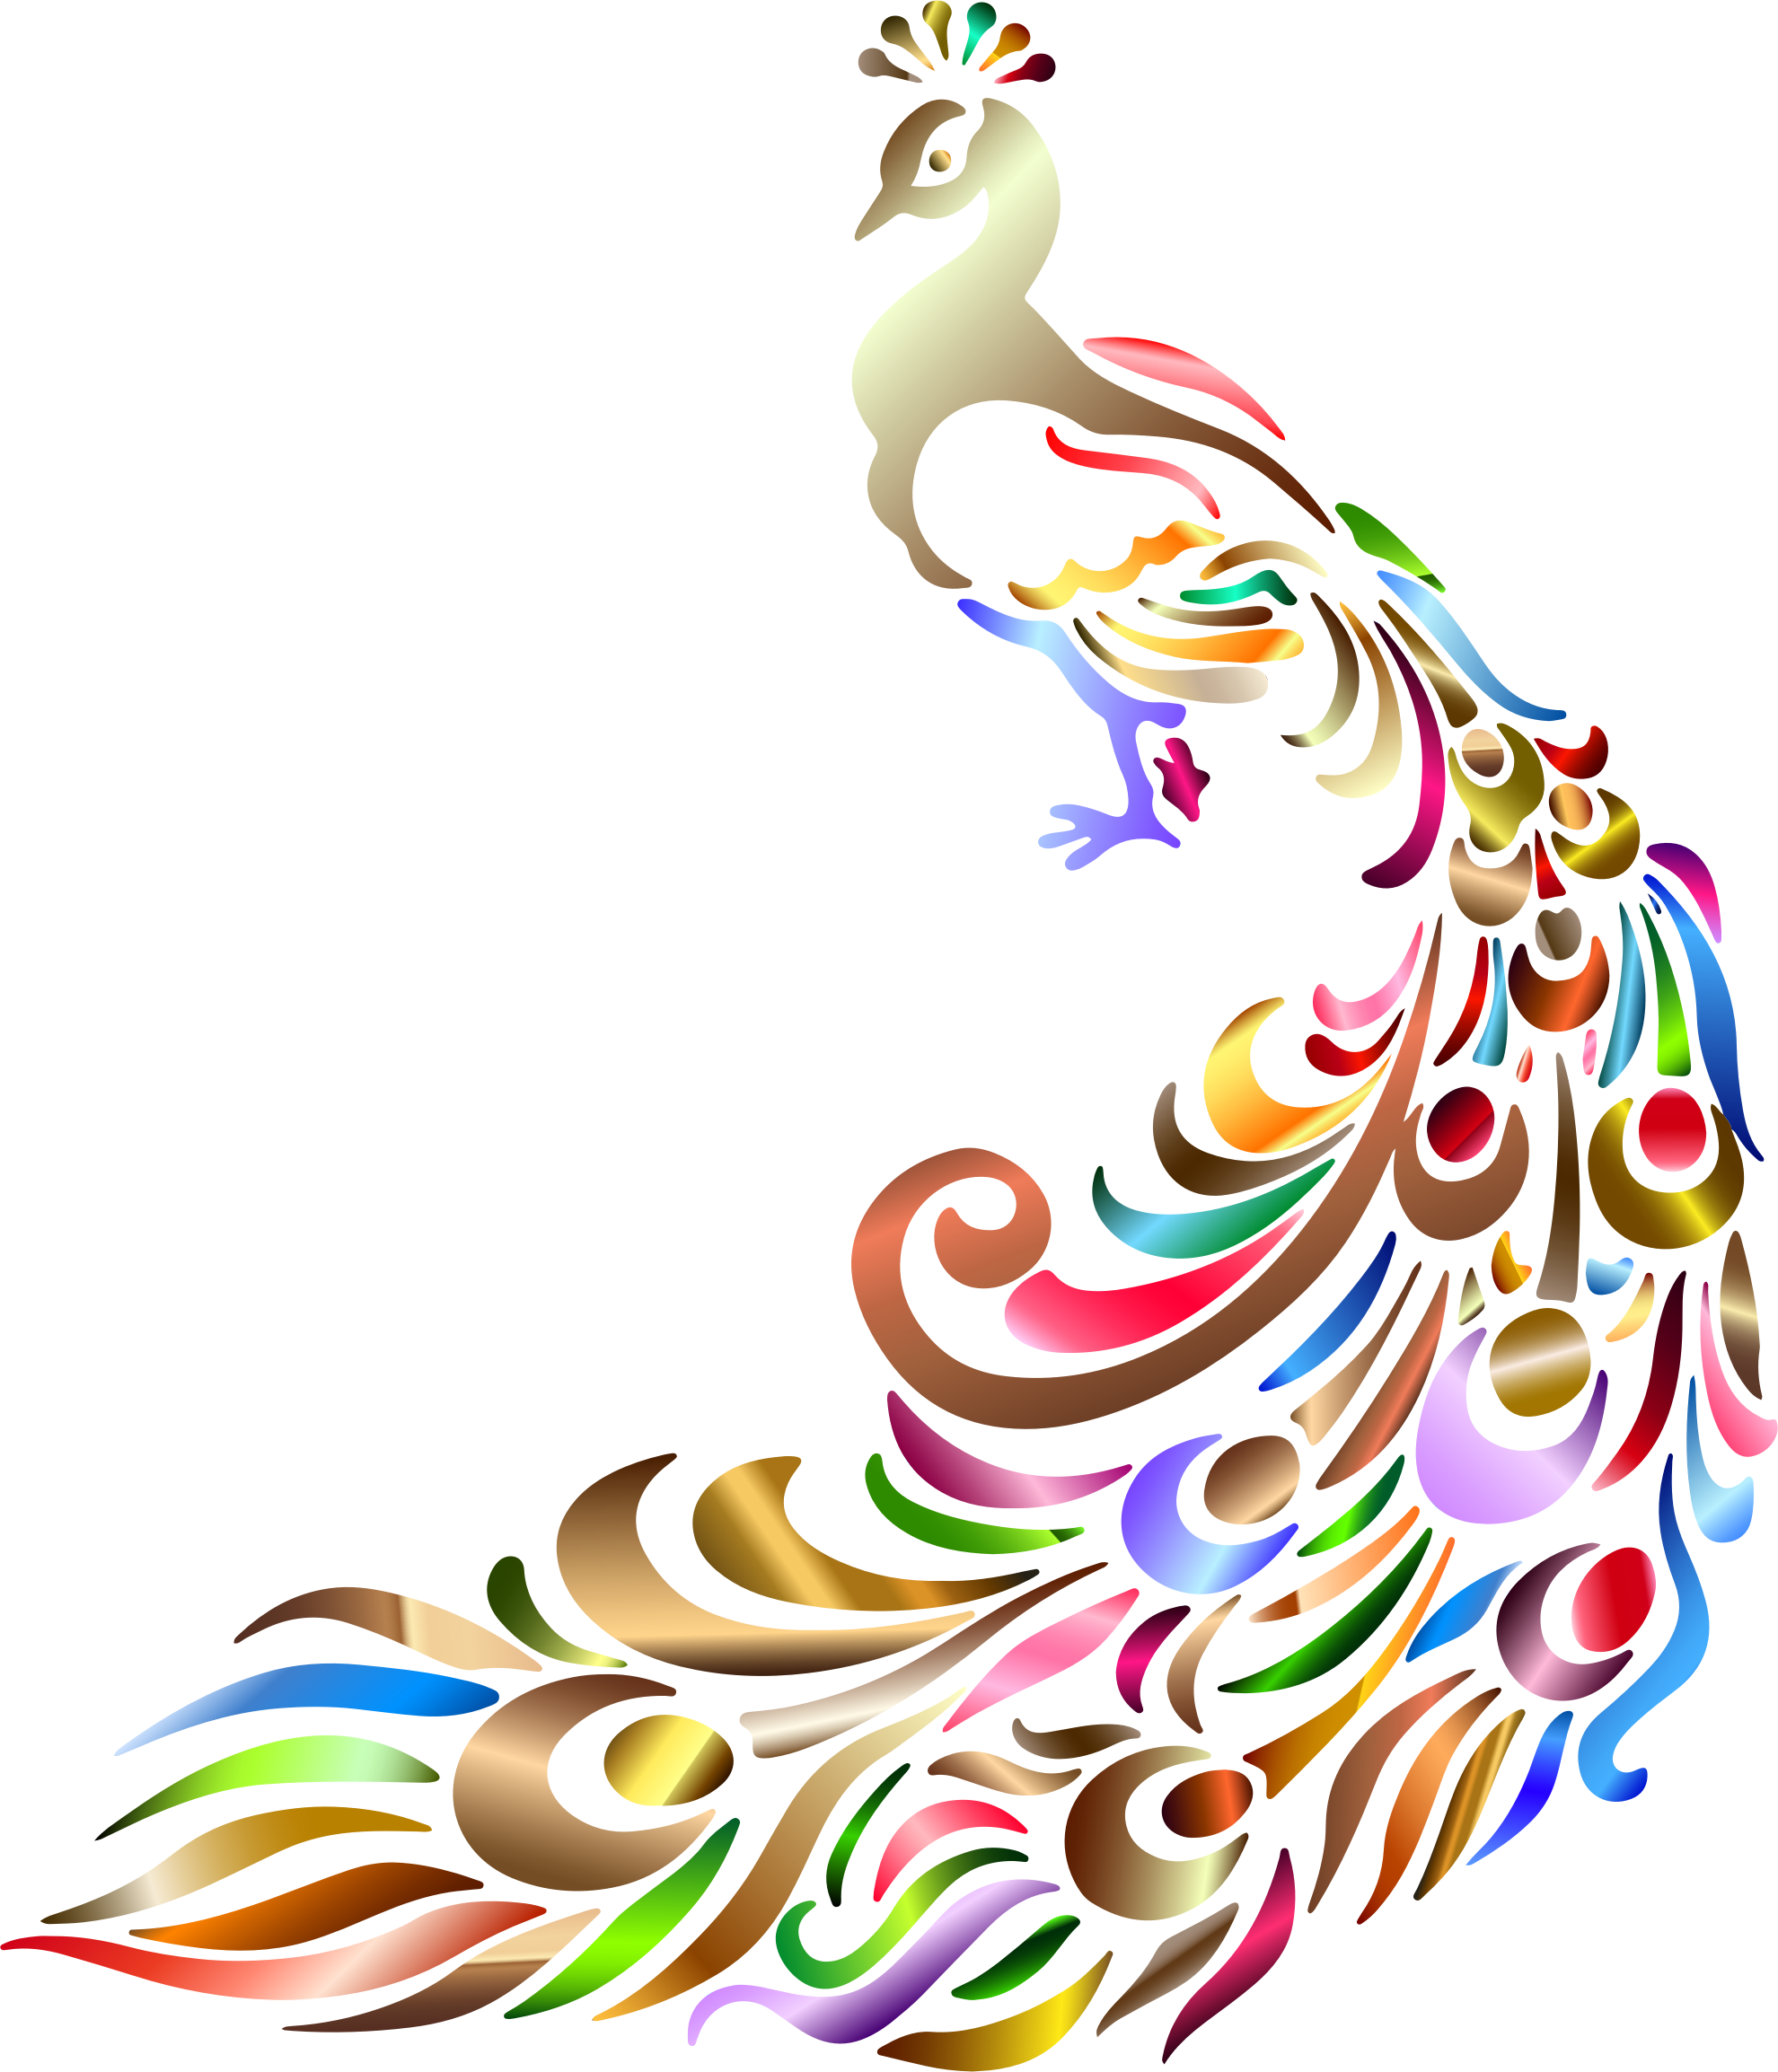 Clipart Chromatic Peacock No Background Peacock